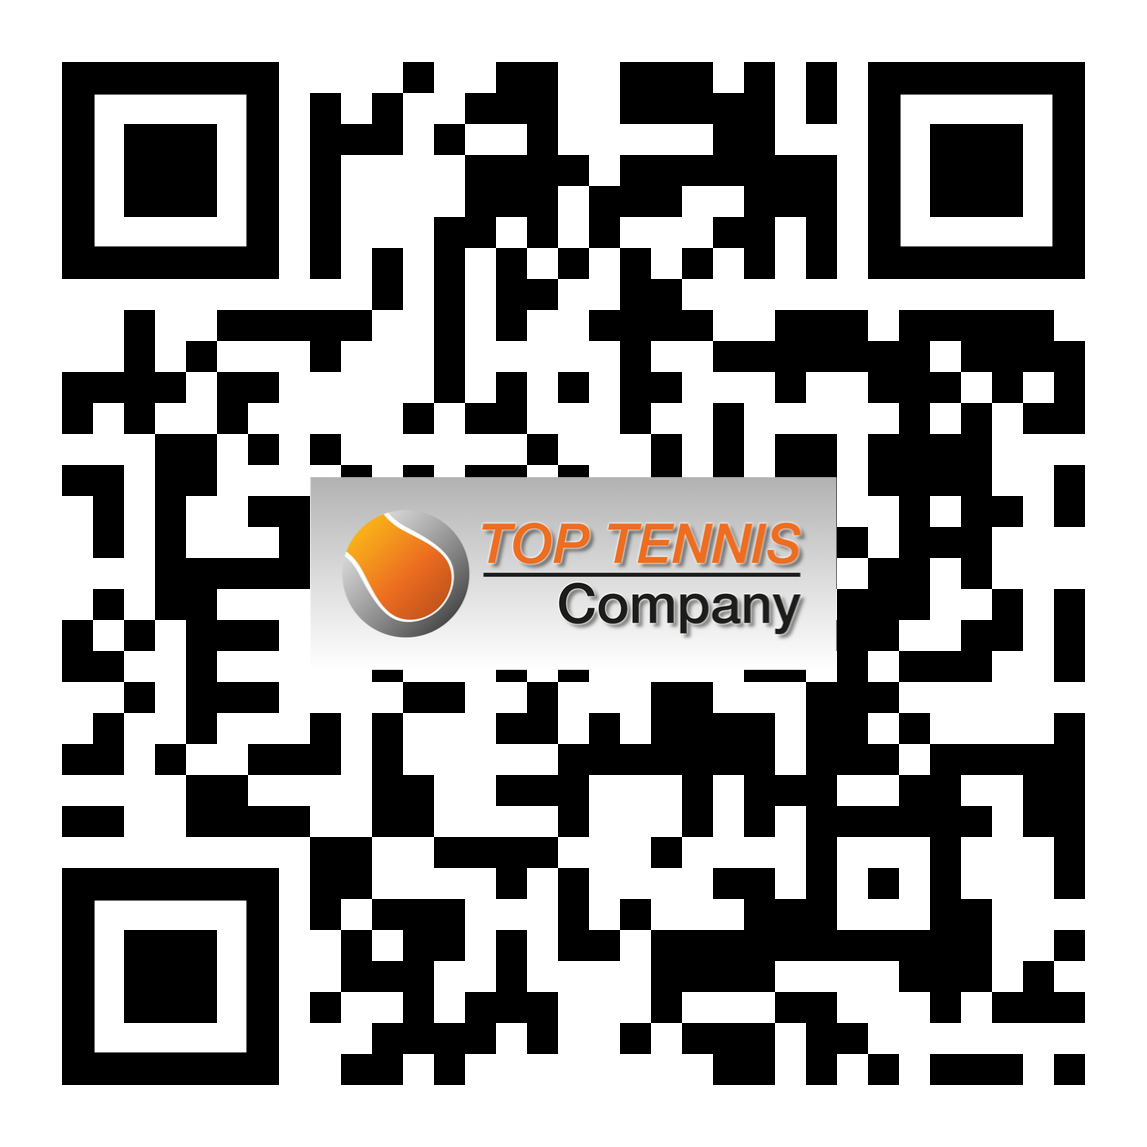 Top Tennis Company